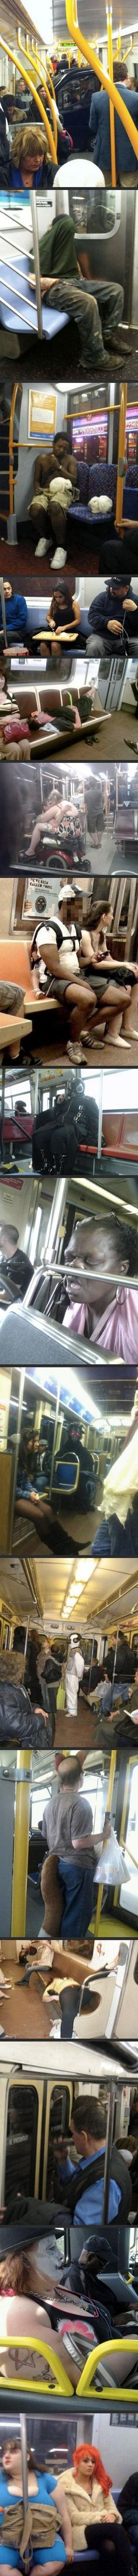 Meanwhile, On Public Transport